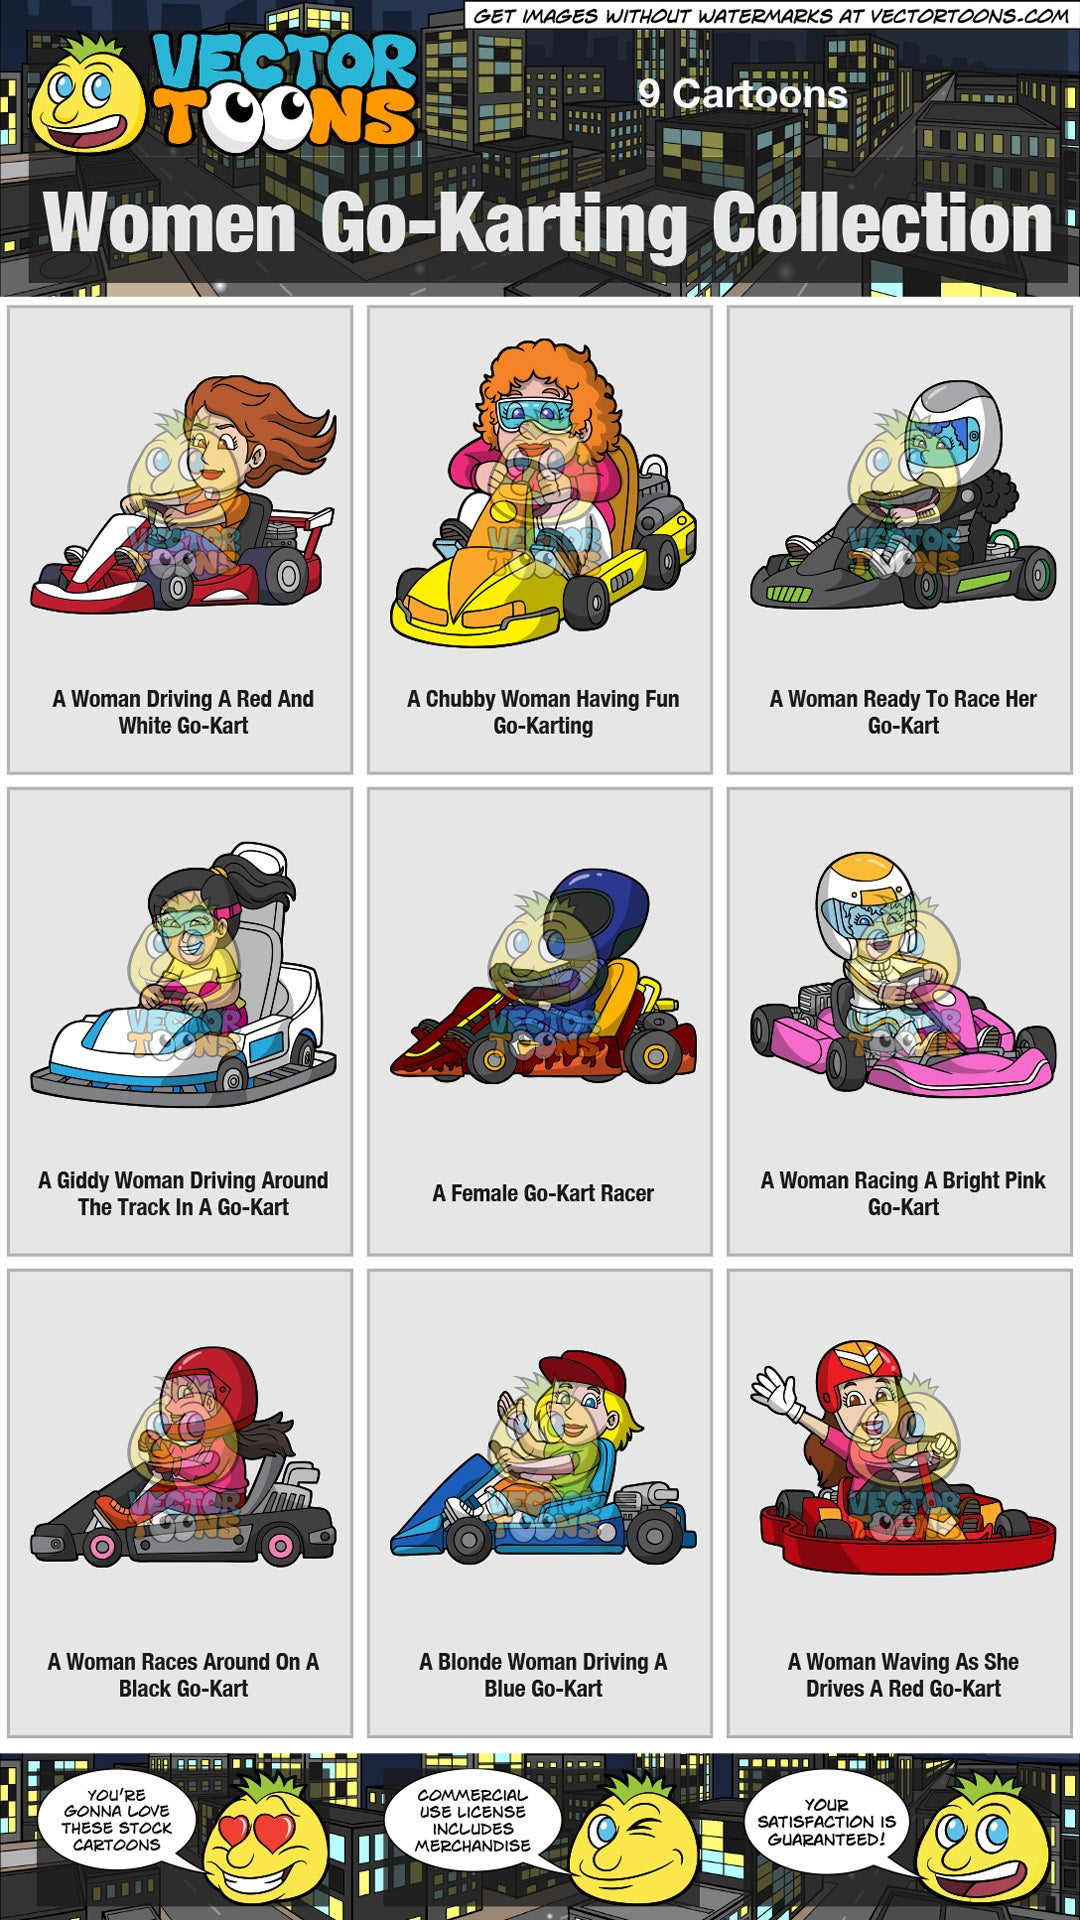 Women Go-Karting Collection